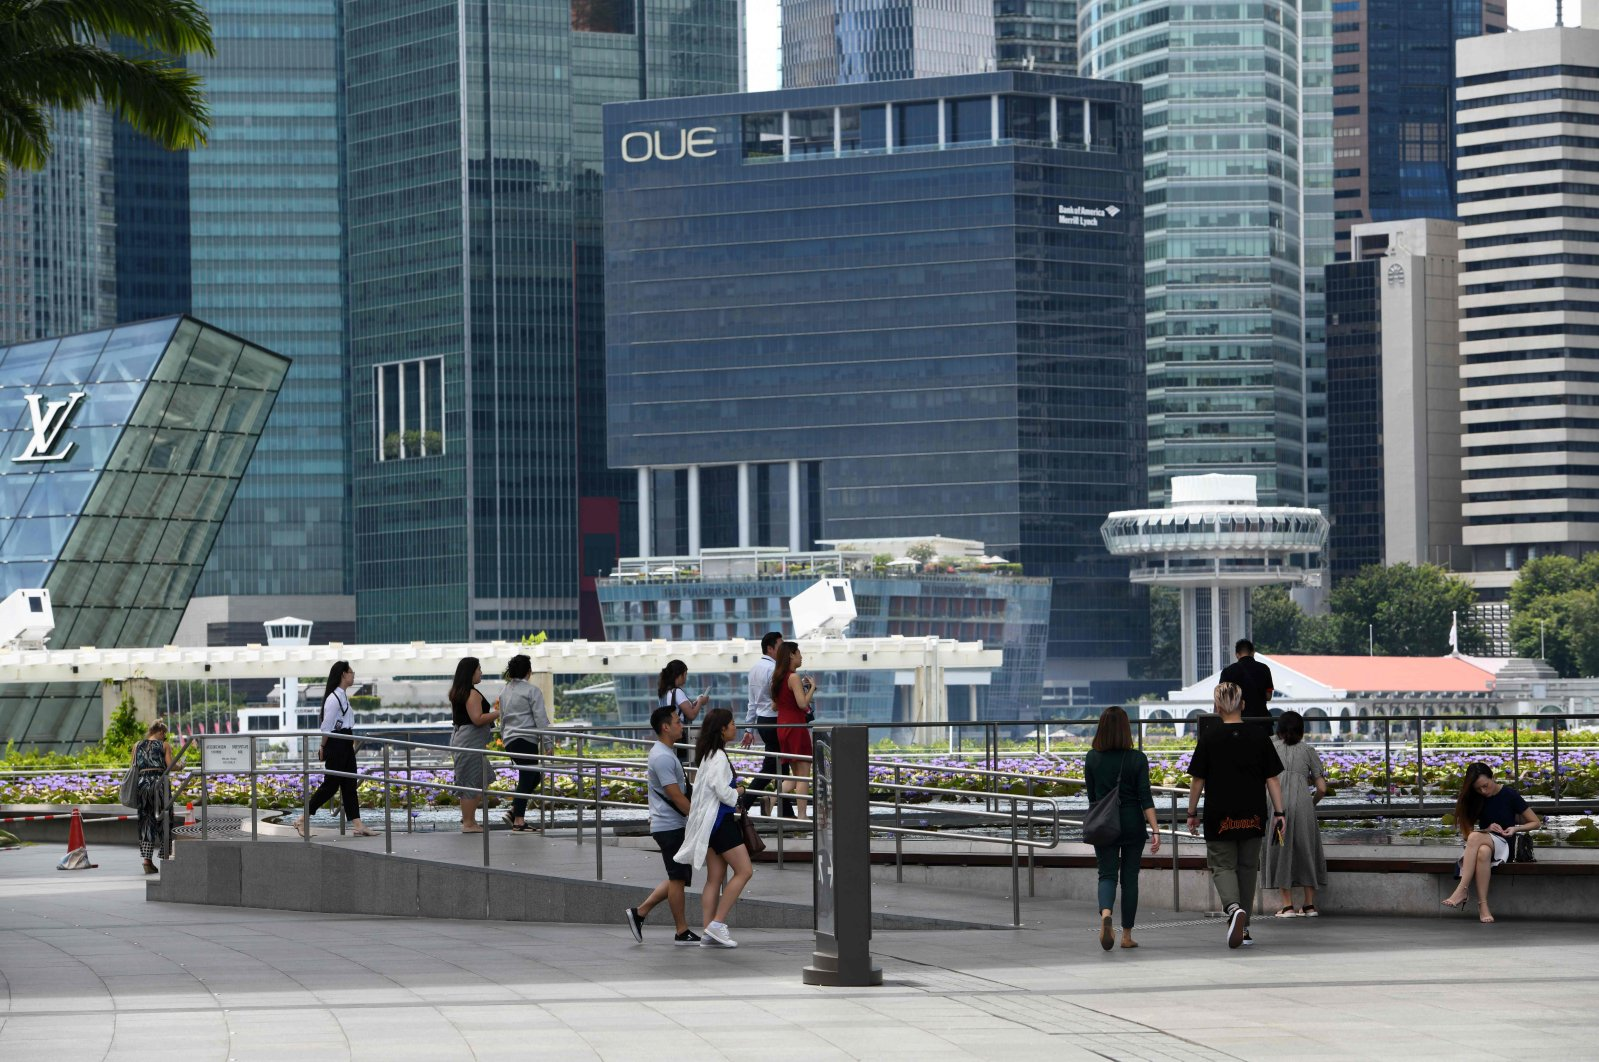 People walk near commercial buildings in the central business district in Singapore, Feb. 18, 2020. (AFP Photo)